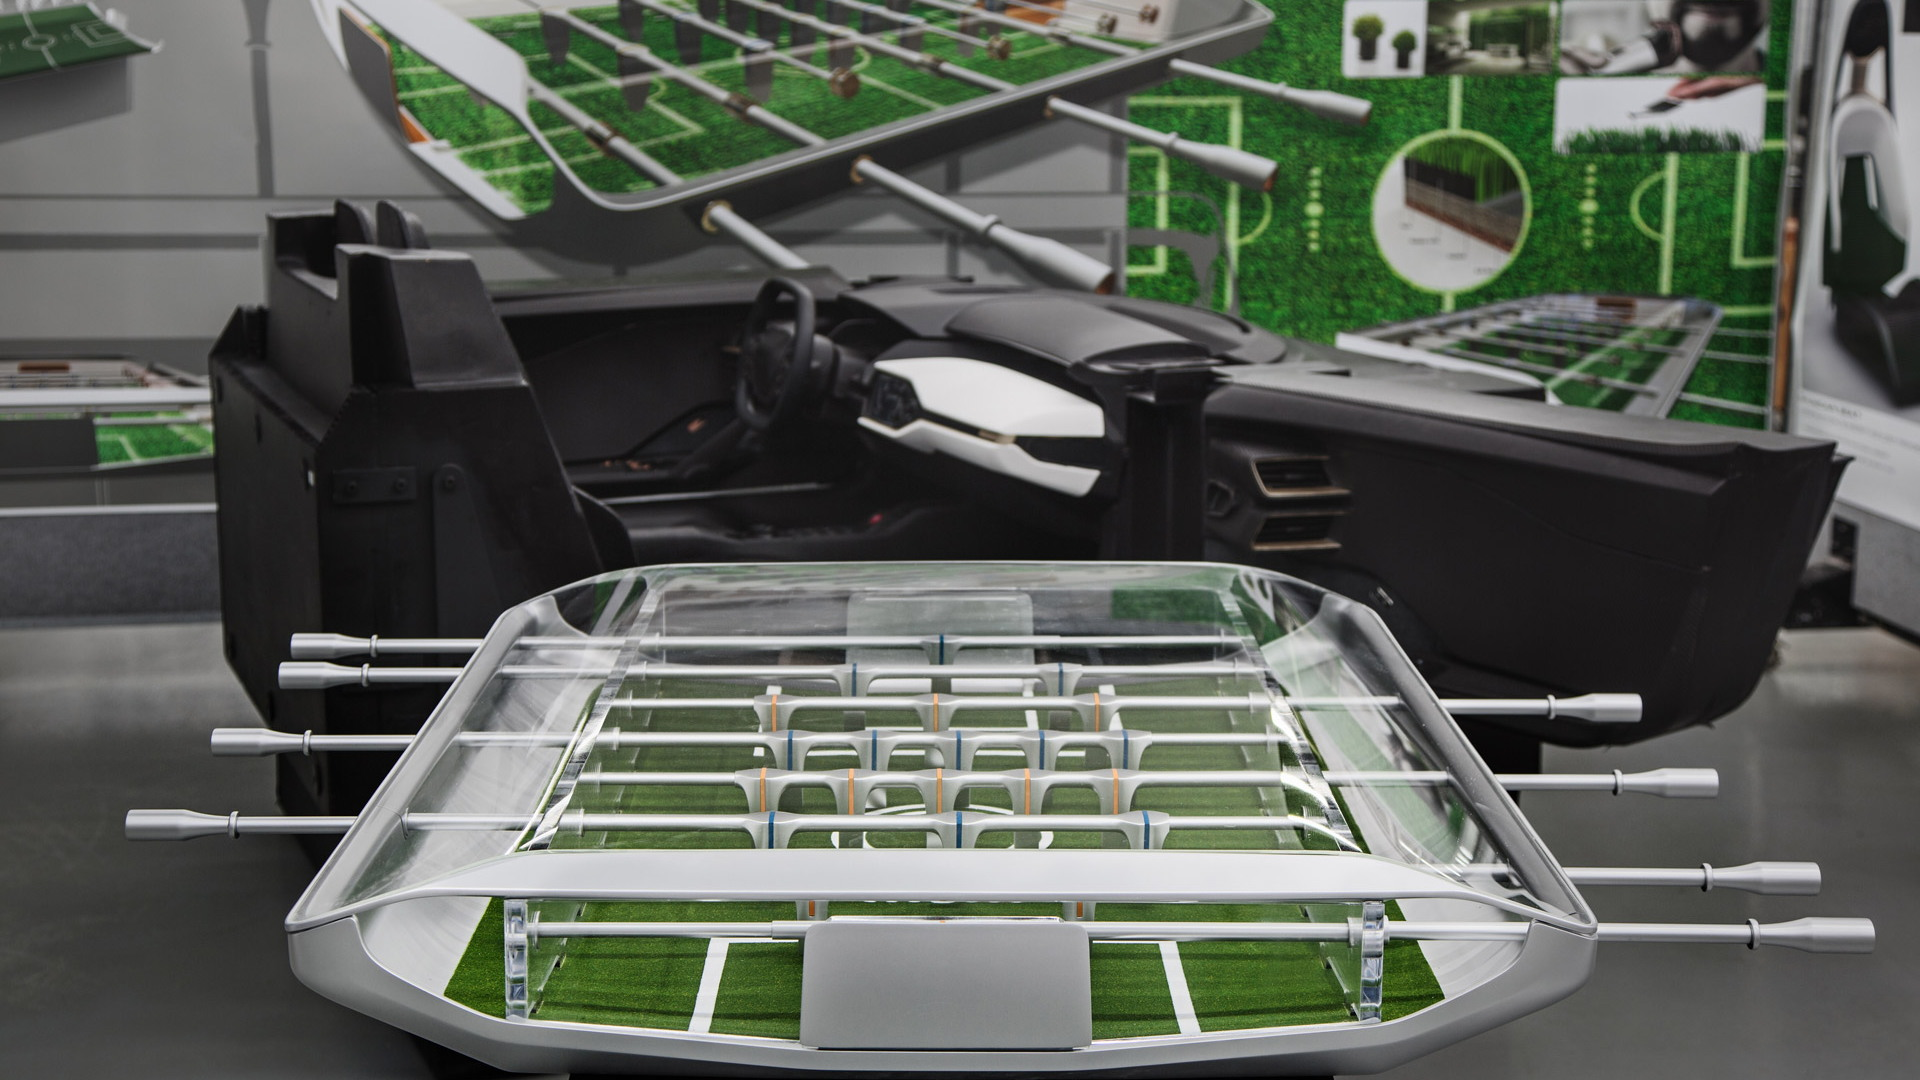 Foosball table inspired by new Ford GT supercar